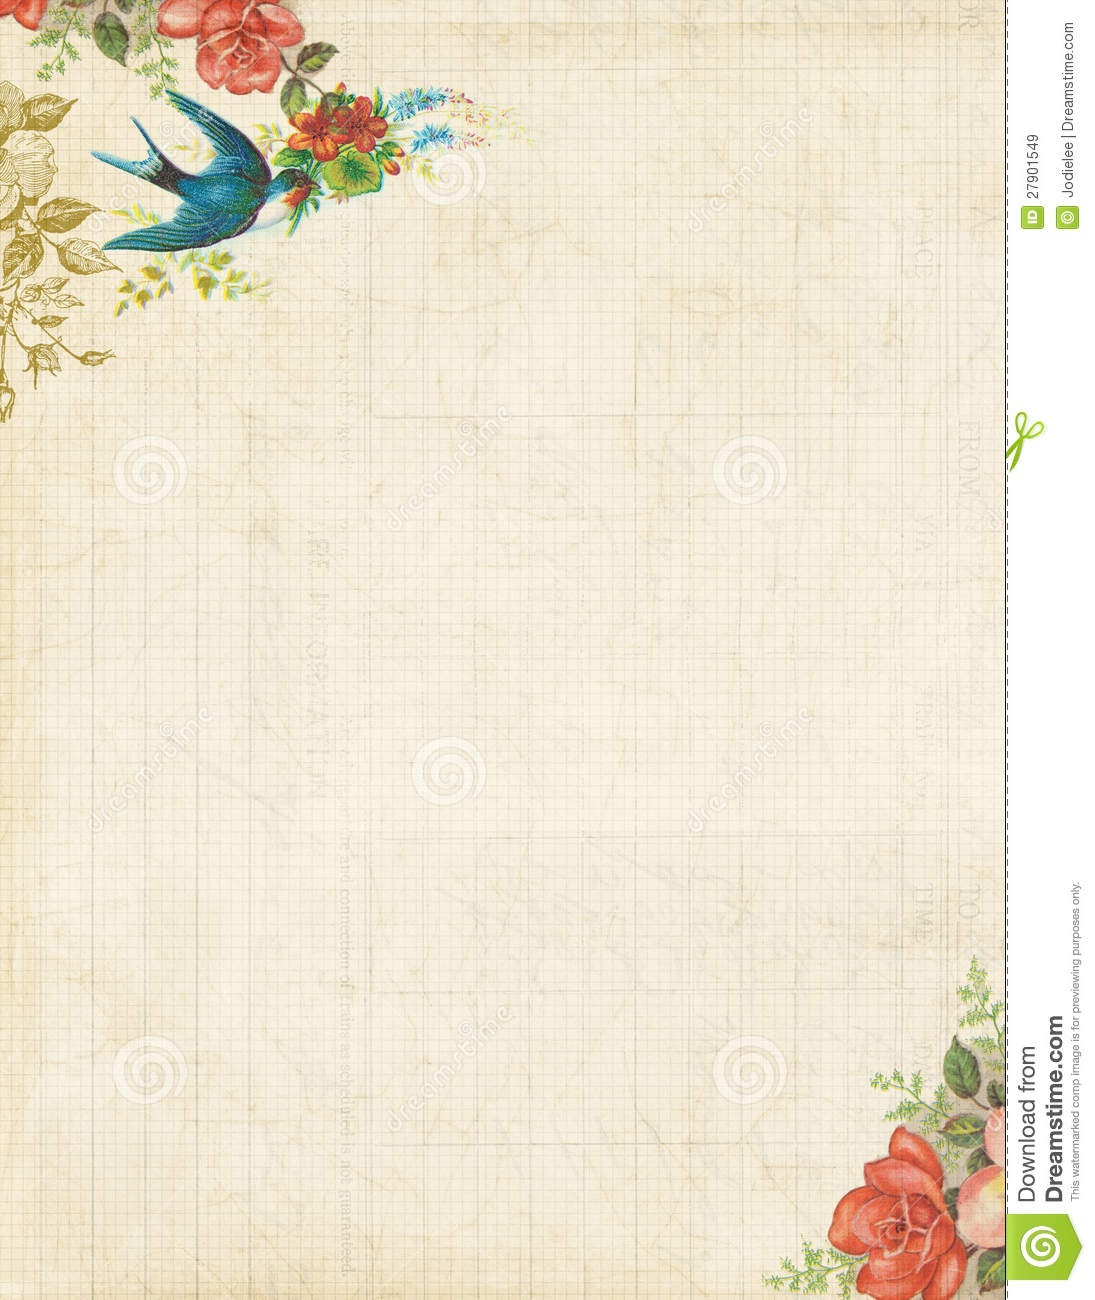 Printable Vintage Bird And Roses Stationary Or Background Stock - Free Printable Vintage Stationary